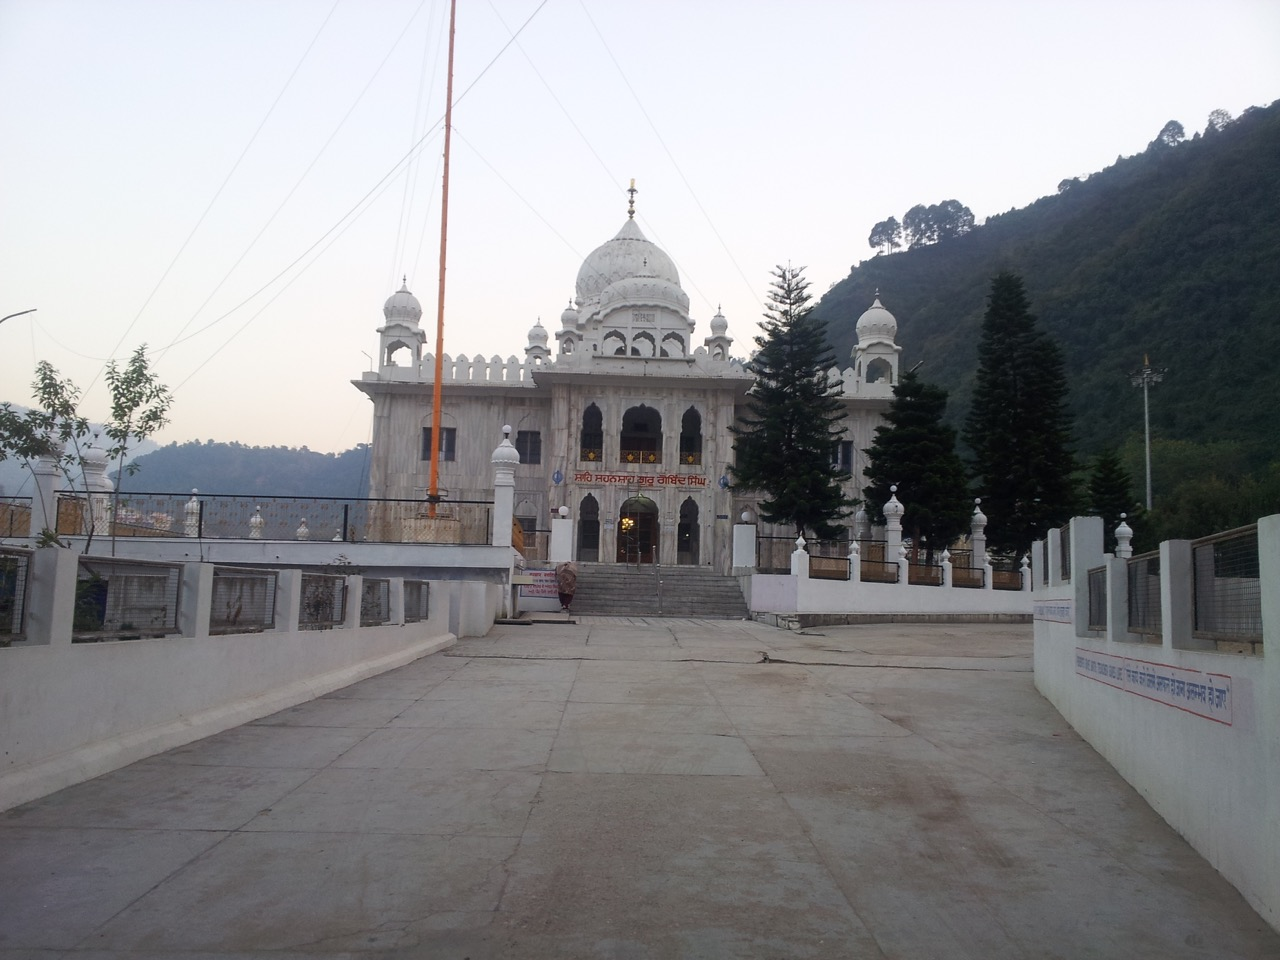 Guru Govind Singh's Gurudwara is right opposite to the temple.